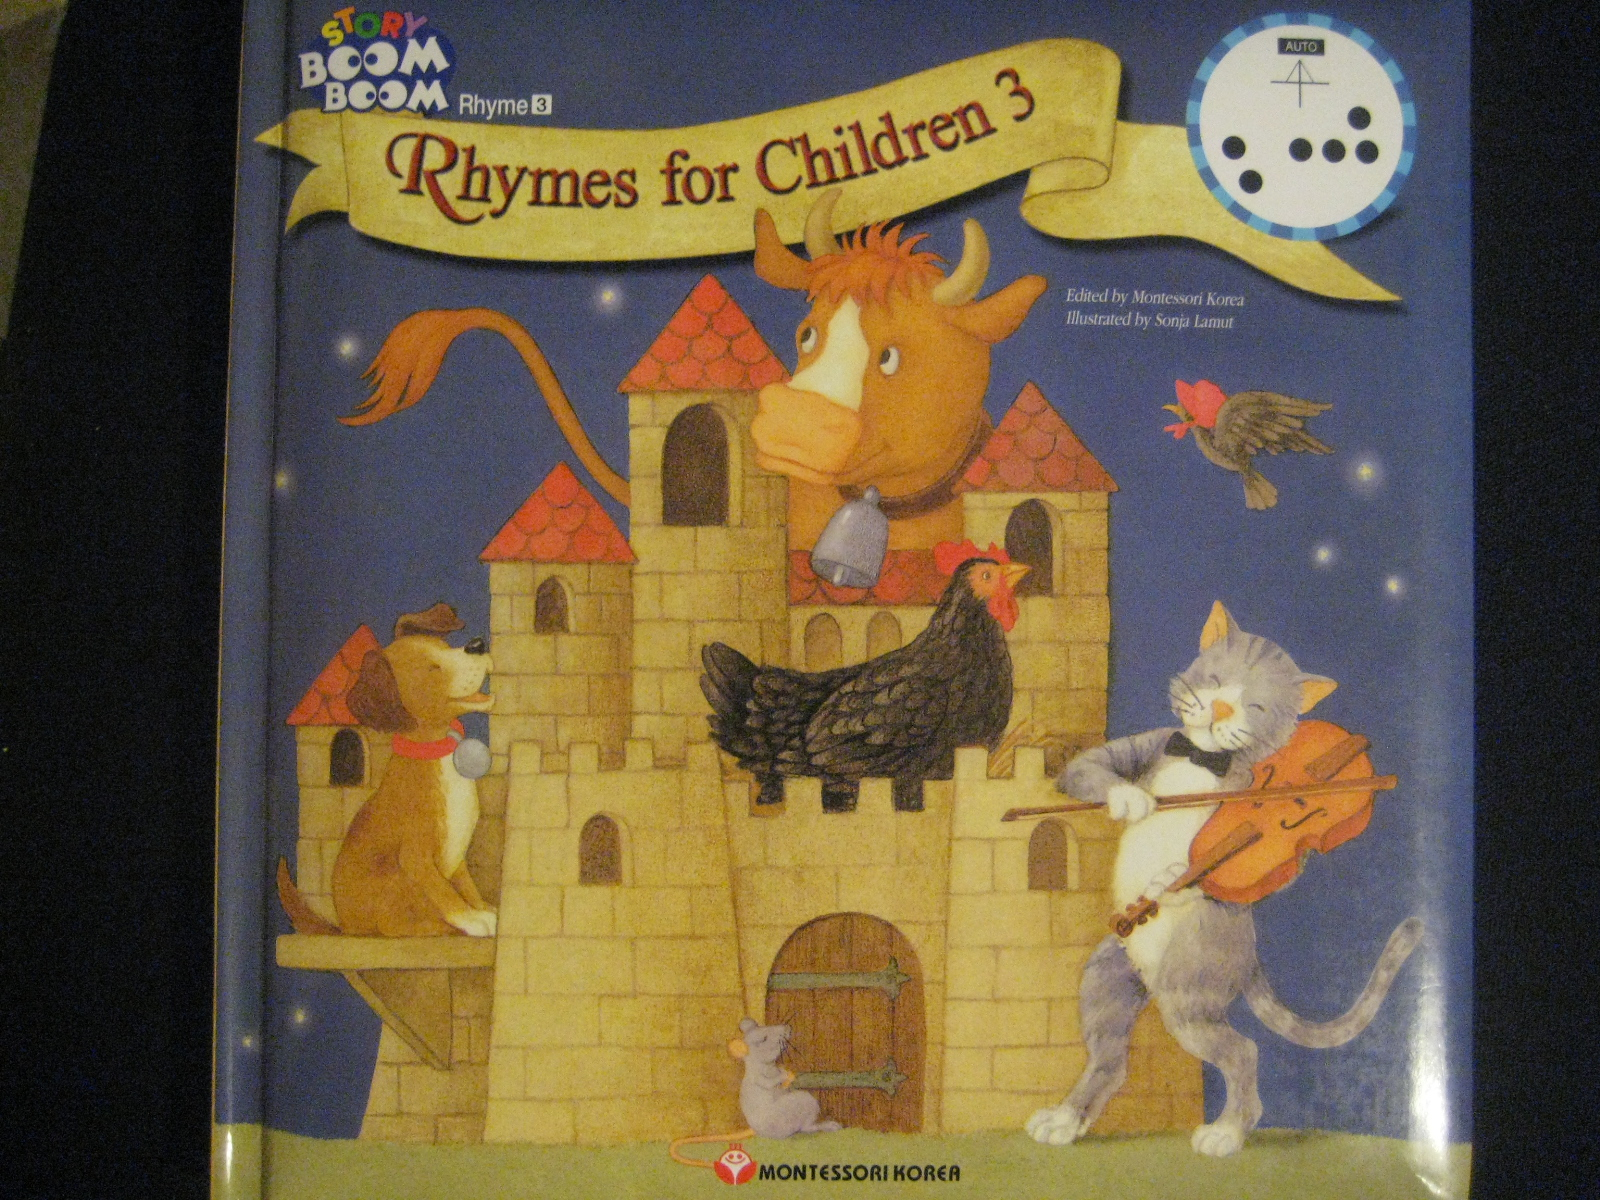 Rhymes for Children 3